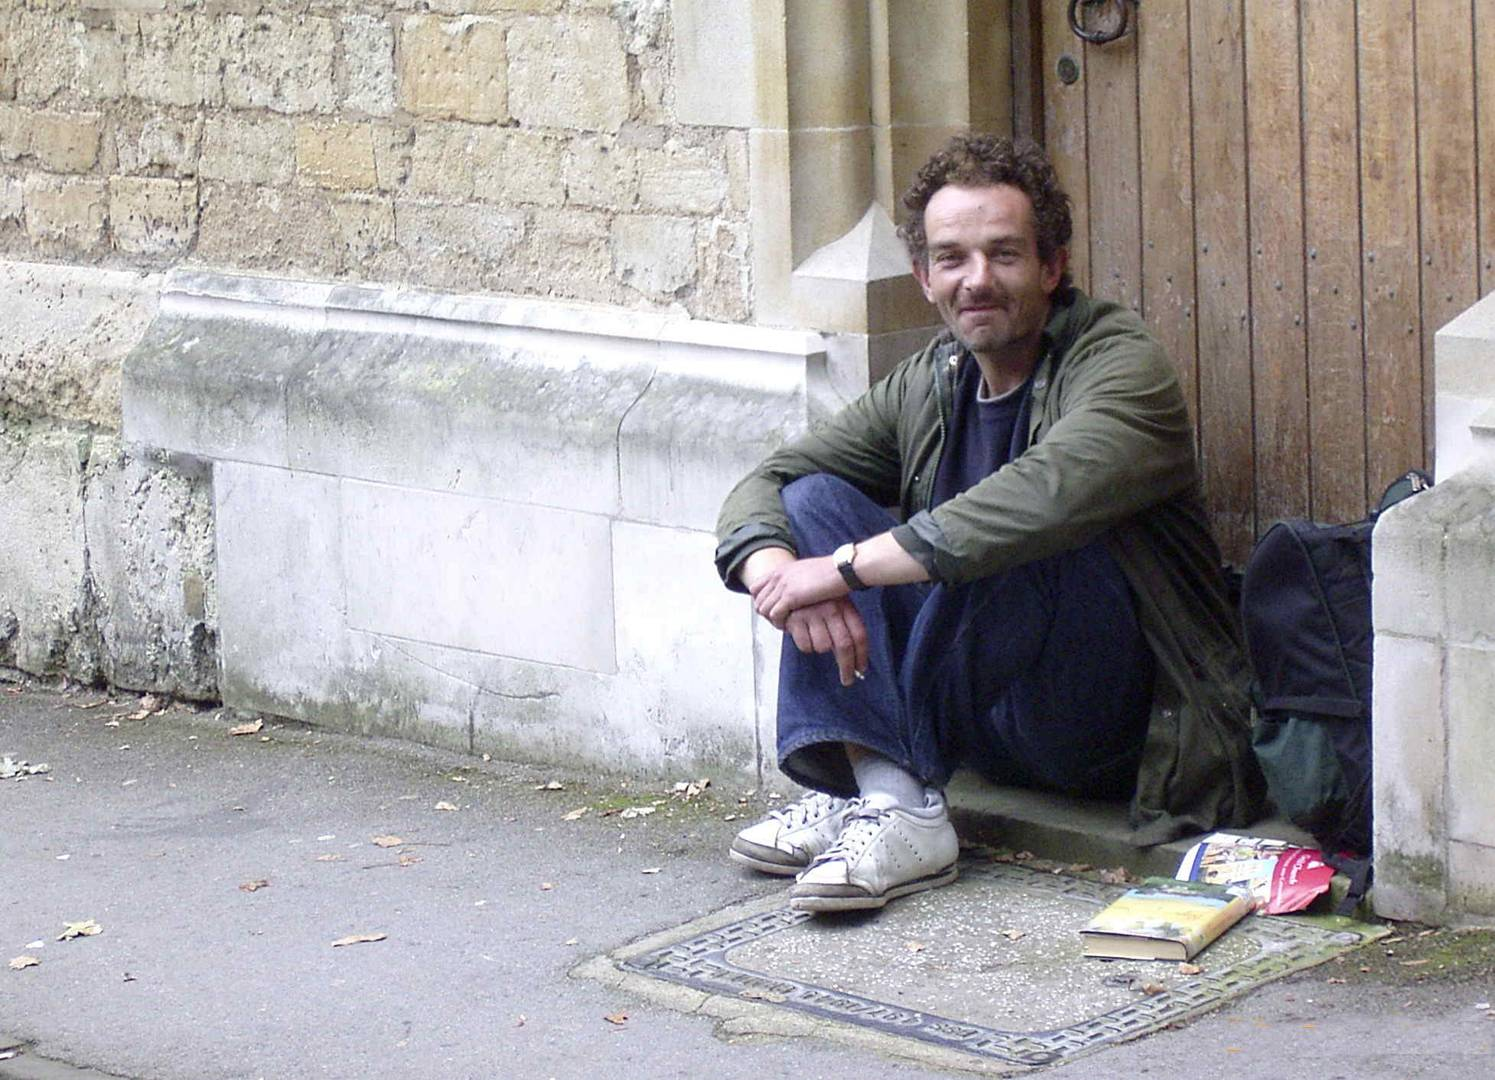 Student at the university of Oxford